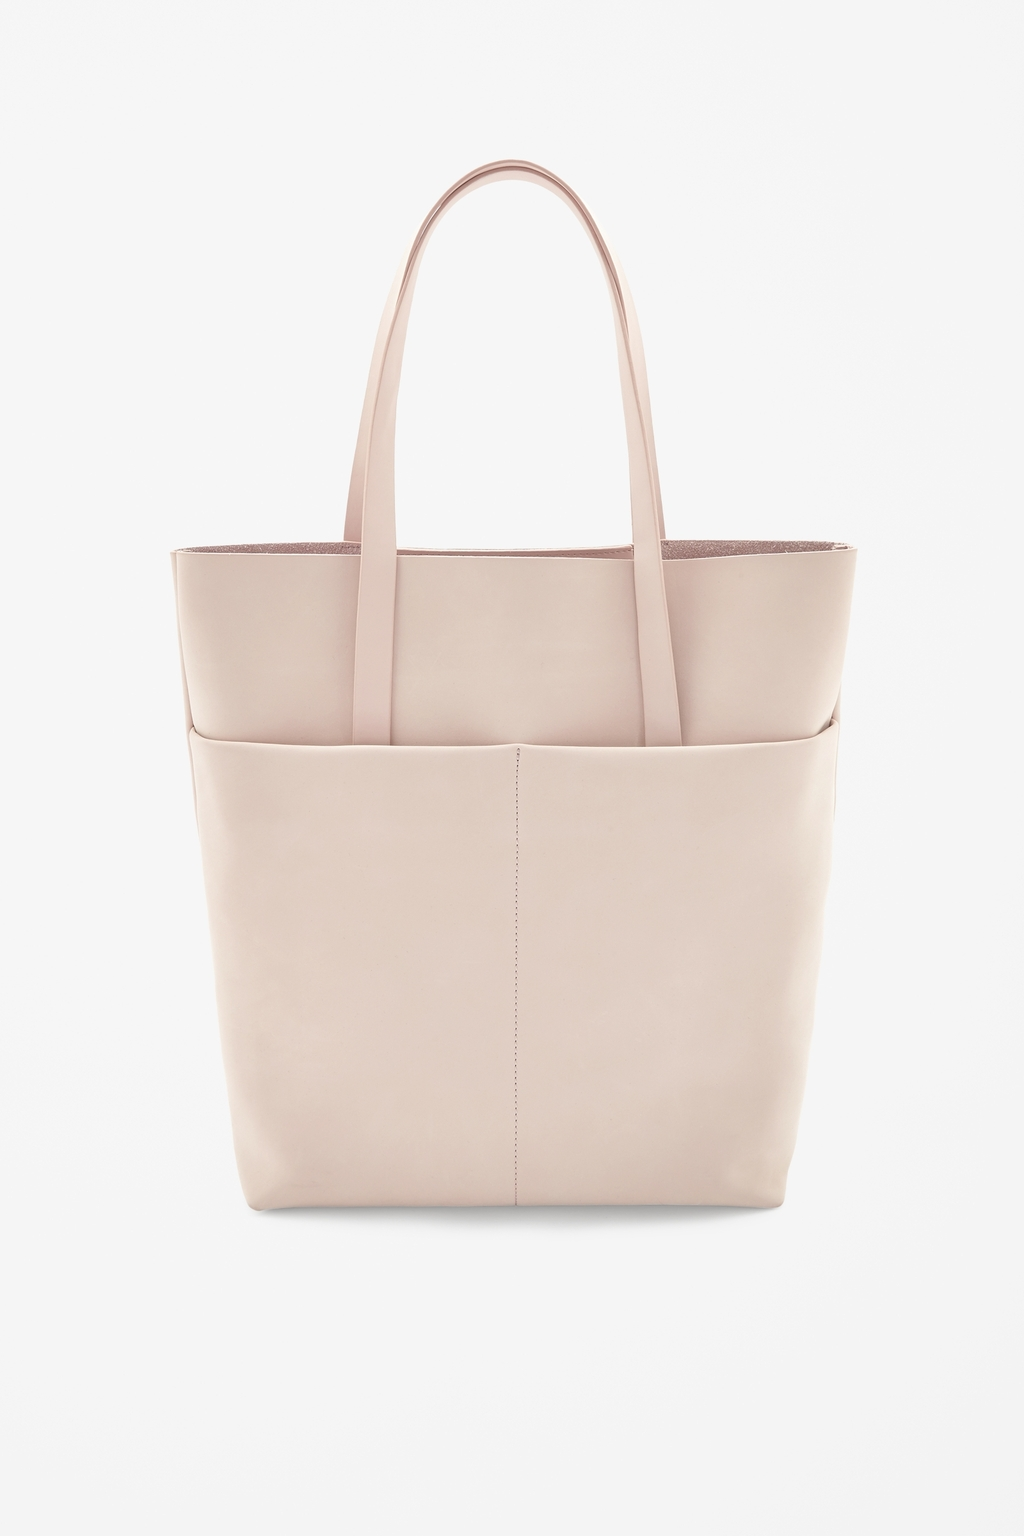 Nubuck Leather Tote - predominant colour: nude; occasions: casual, creative work; type of pattern: standard; style: tote; length: handle; size: standard; material: leather; pattern: plain; finish: plain; season: s/s 2014